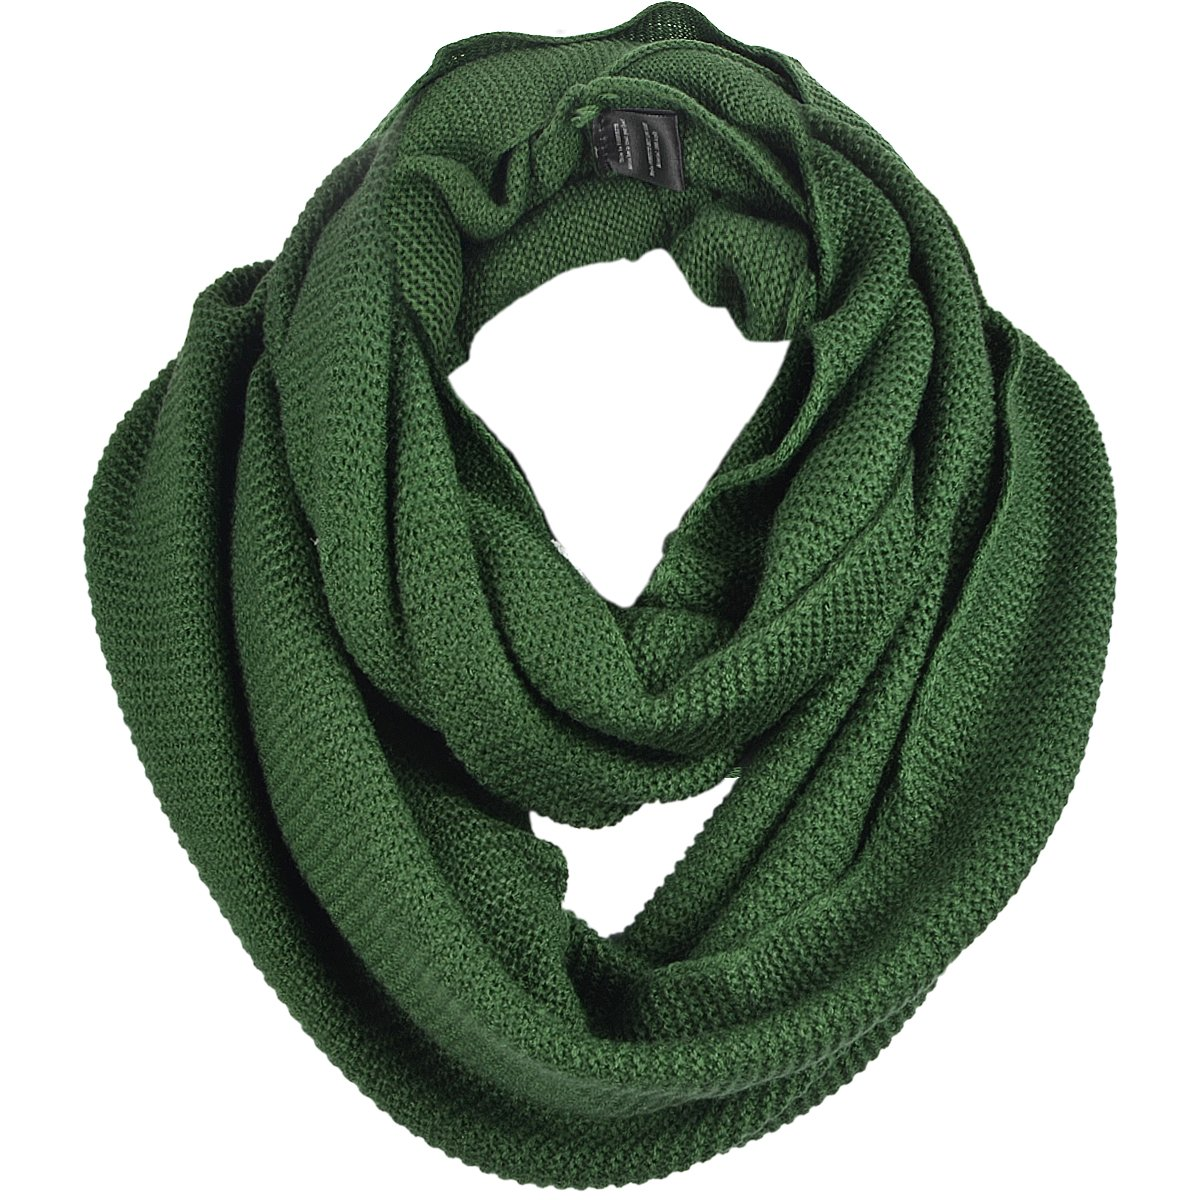 FORBUSITE Knit Winter Infinity Scarf for Men E5081b (Dark Grey) B5081b-C-DGY